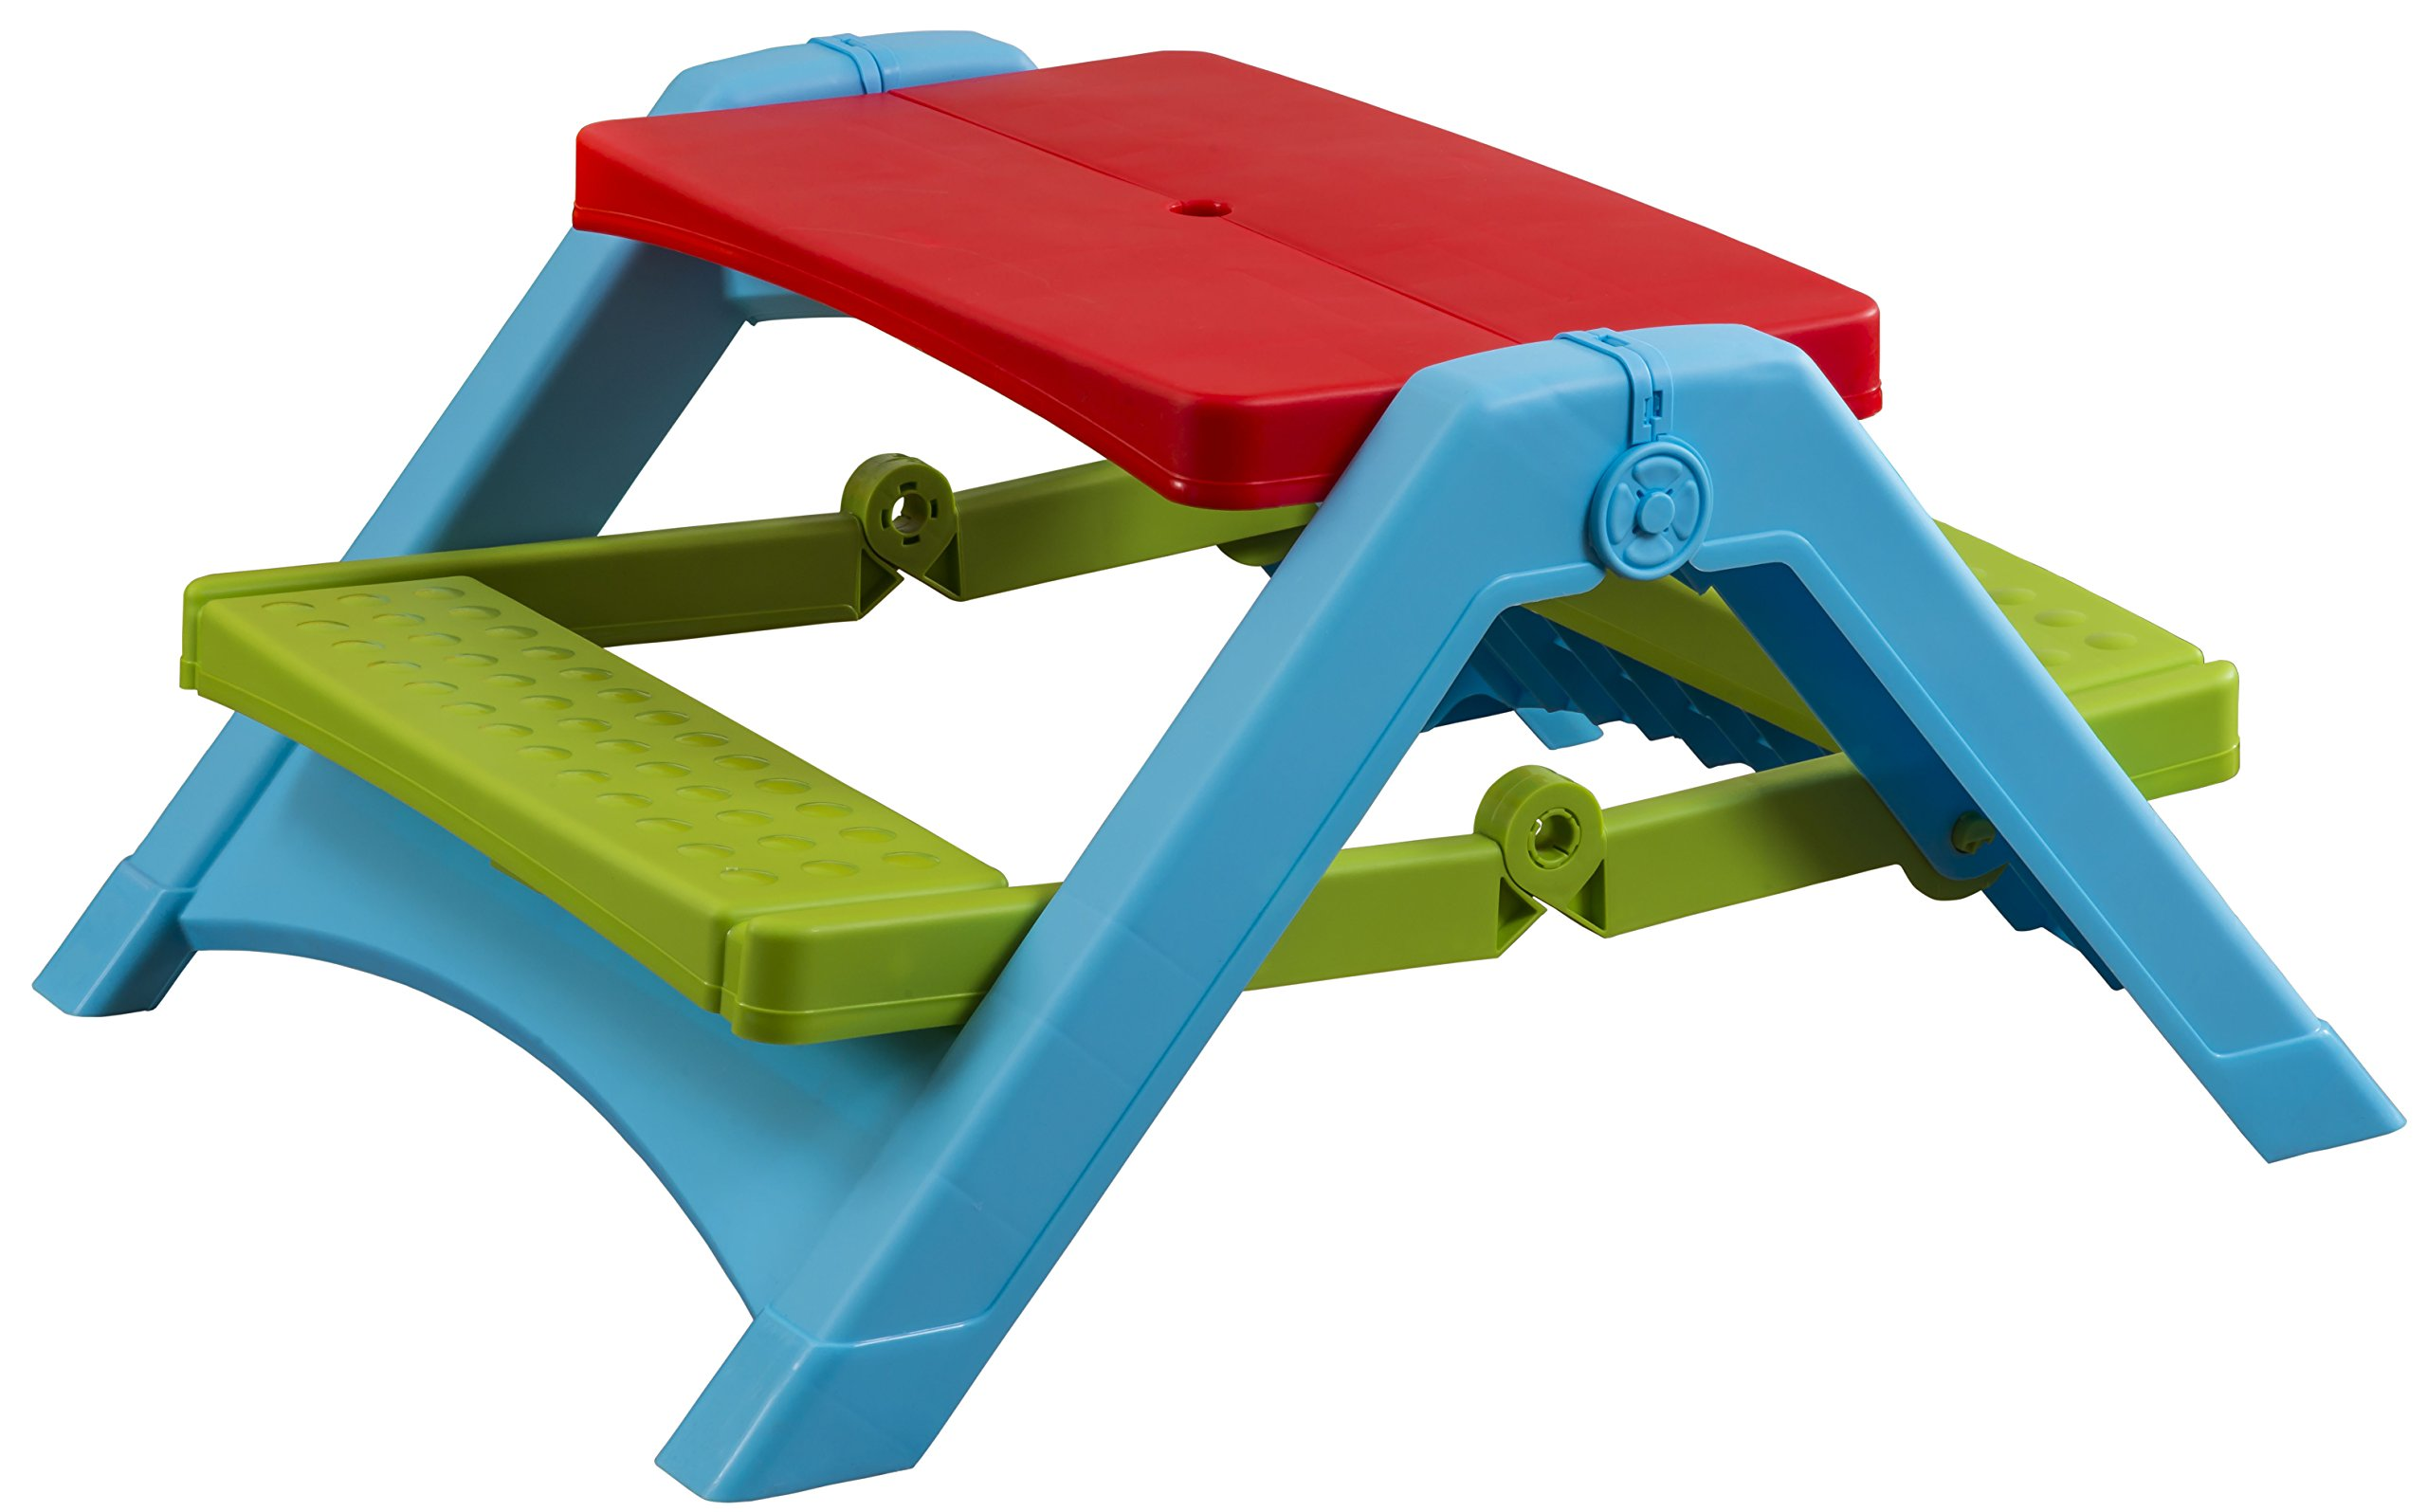 Pal Play Foldable Kids Picnic Table by Pal Play